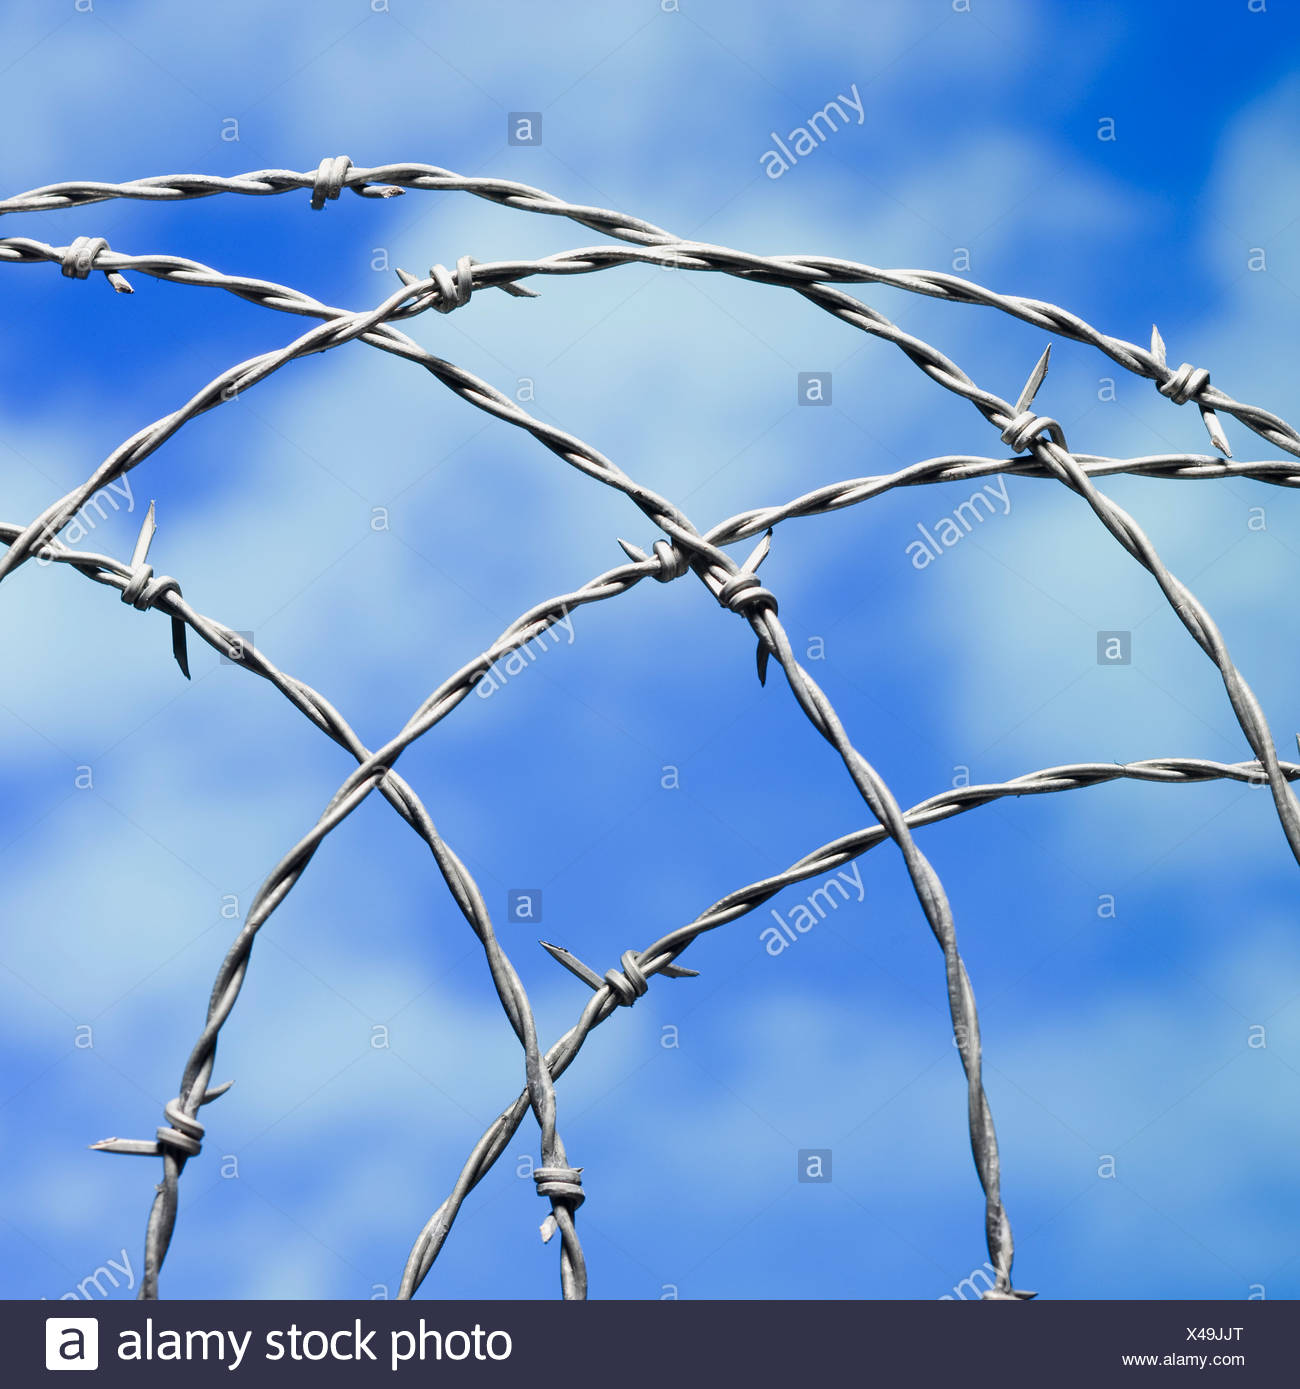 barbed wire - Stock Image